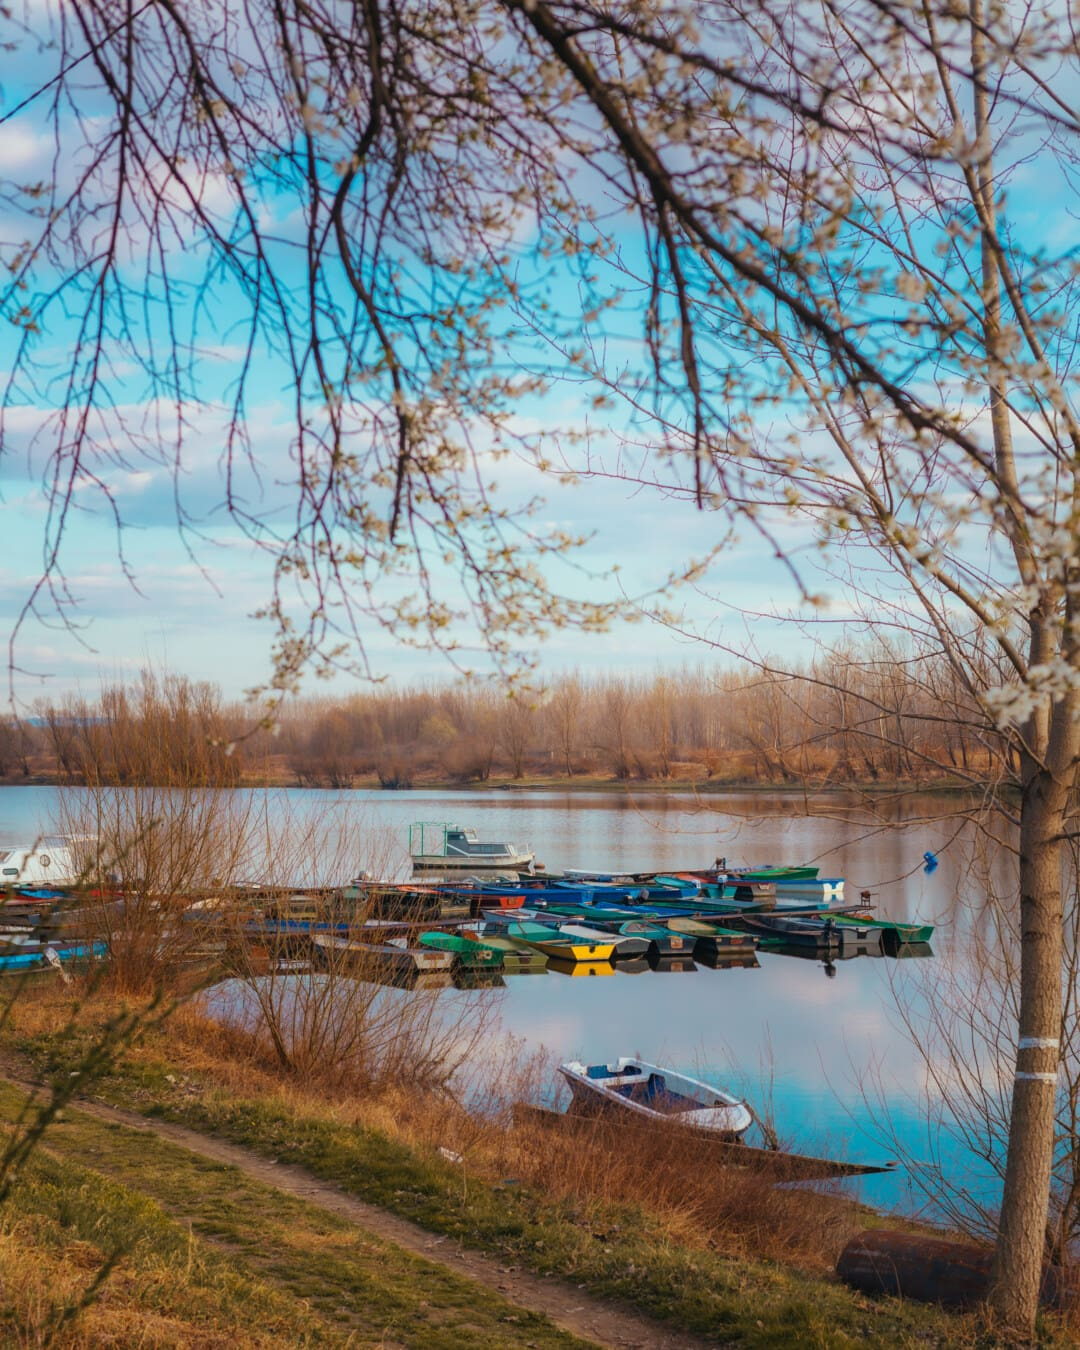 harbour, boats, atmosphere, calm, water, tree, forest, landscape, river, lake